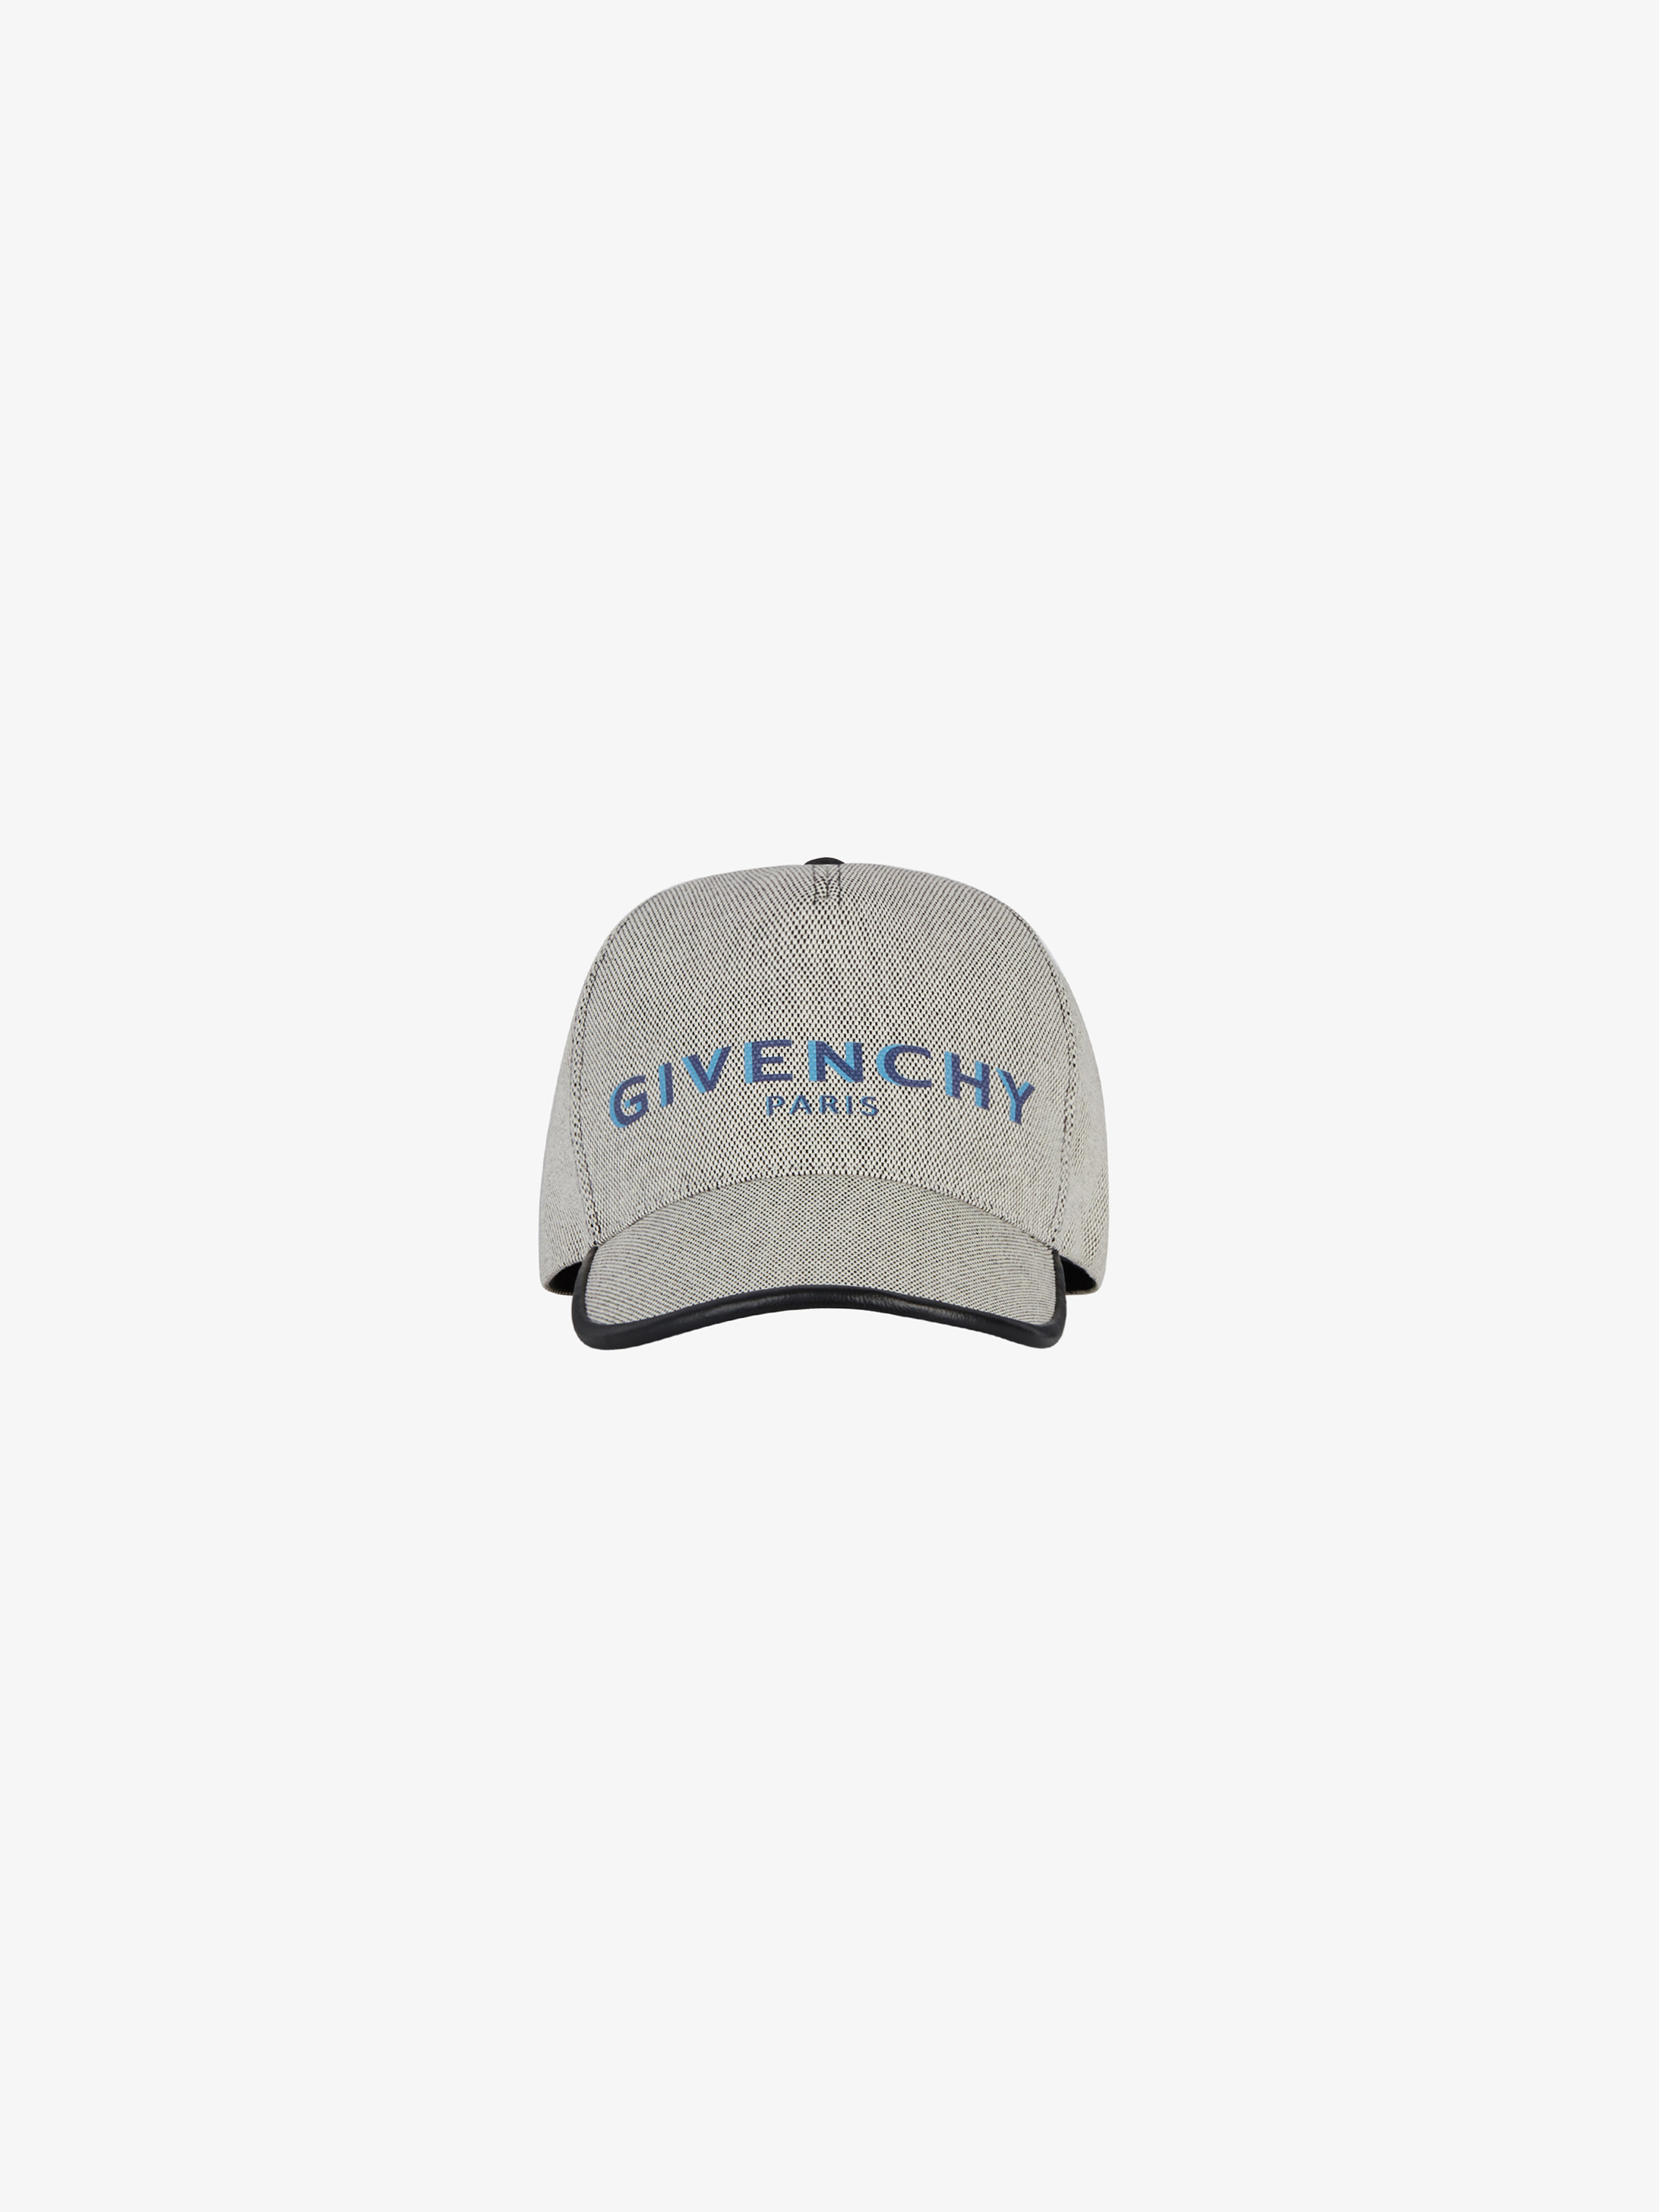 GIVENCHY PARIS cap in canvas and leather